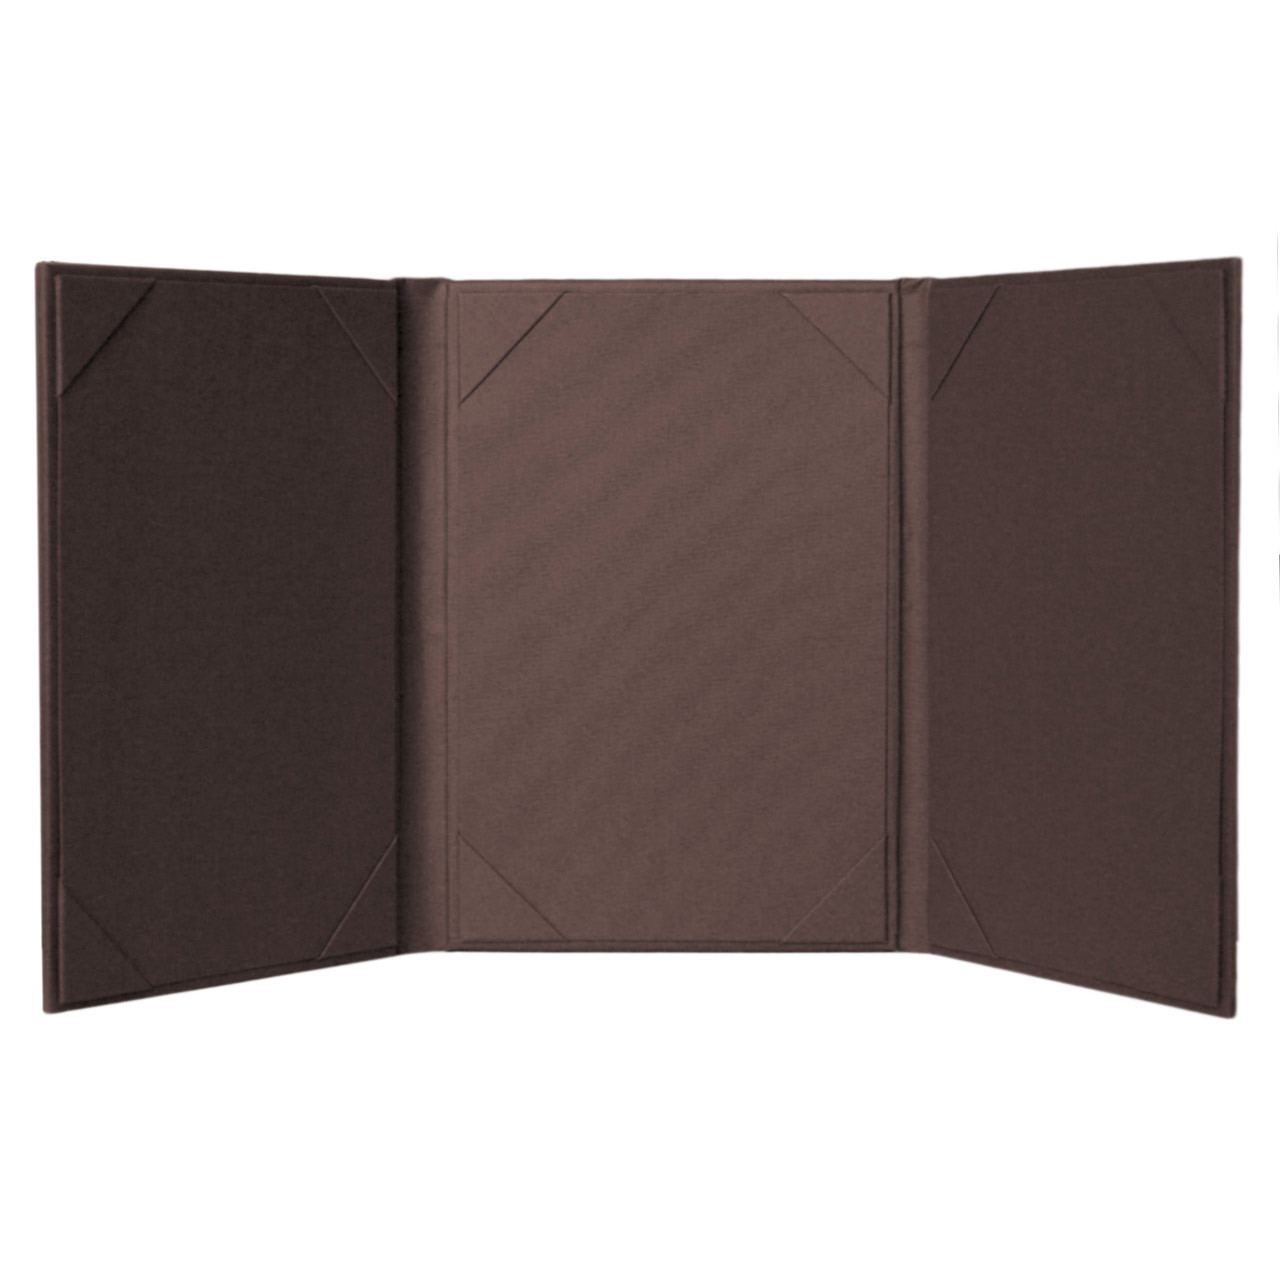 3 Panel Menu Cover - Inside View French Roast Color